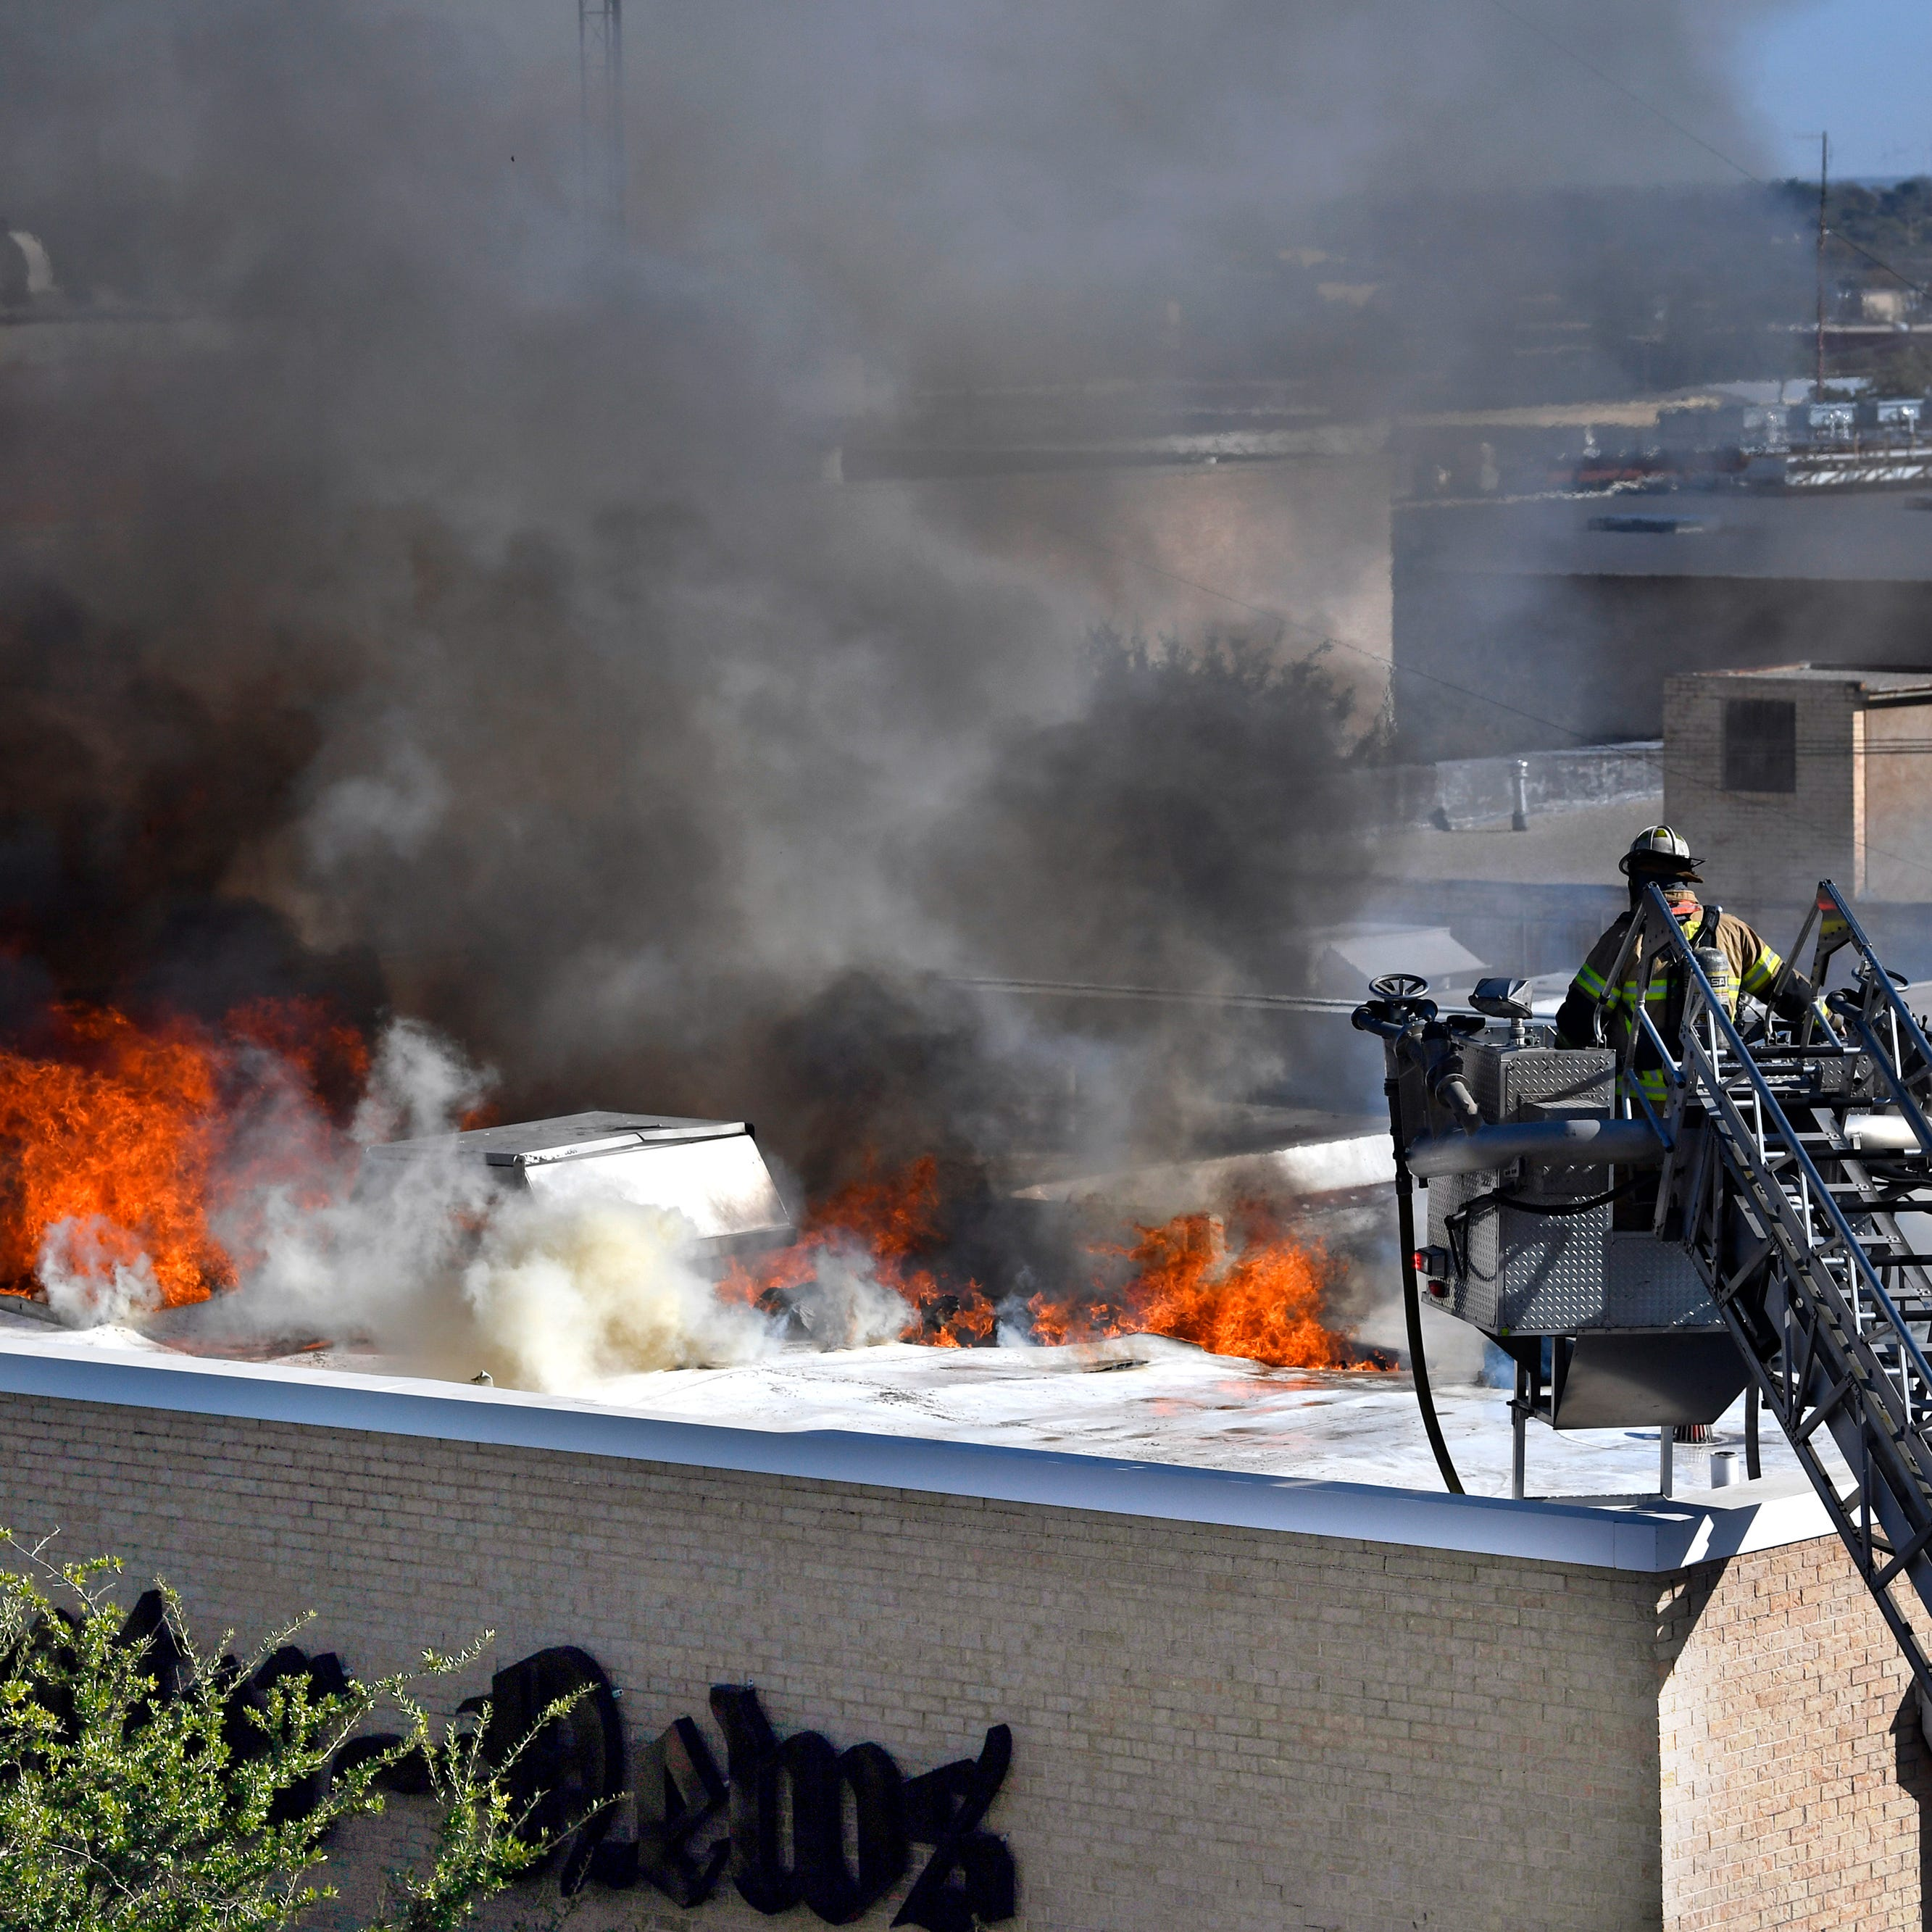 What we know: Fire at the Abilene Reporter-News building